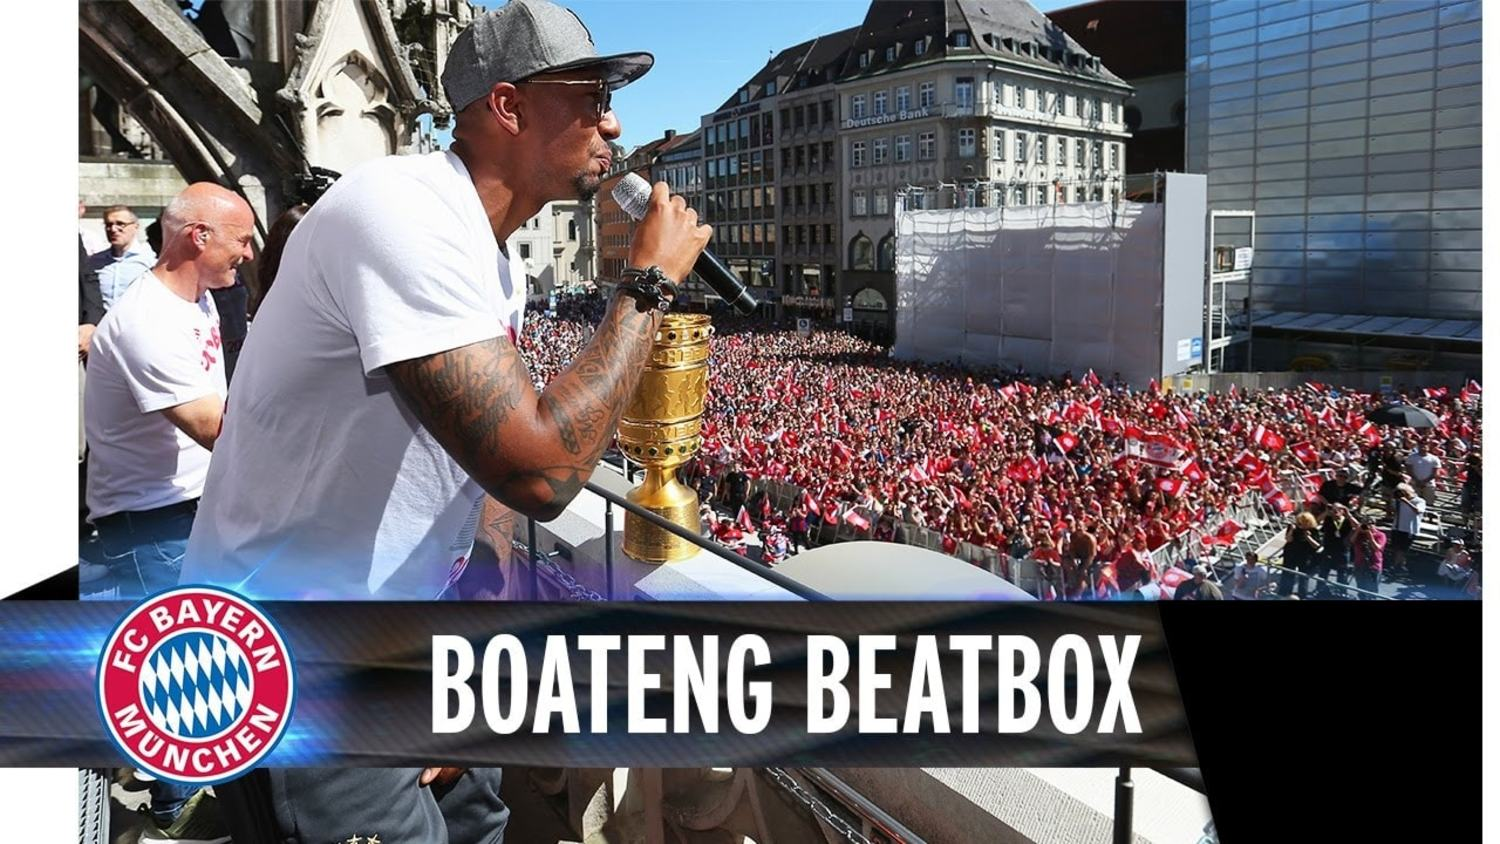 Jerome Boateng Celebrates Cup Win By Beatboxing!